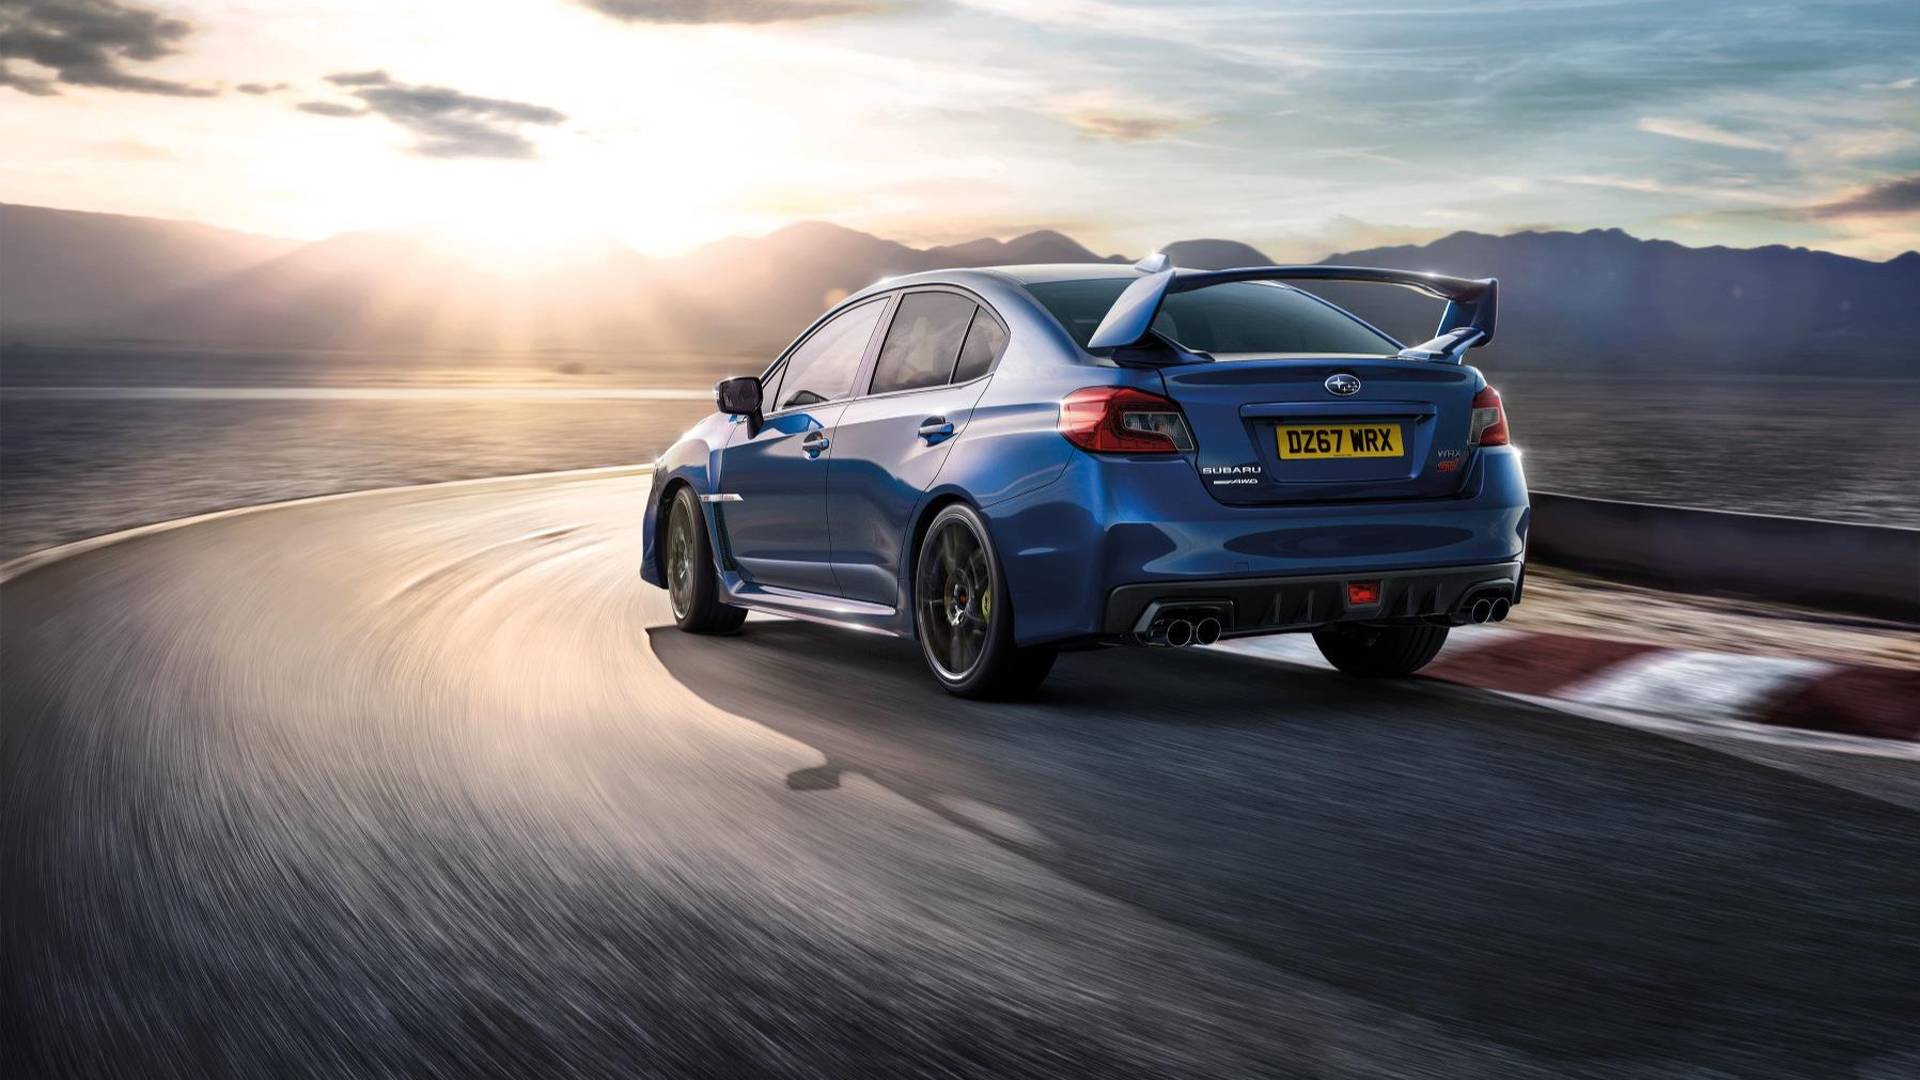 2019 Subaru Wrx Sti All But Confirmed To Develop 310 Horsepower